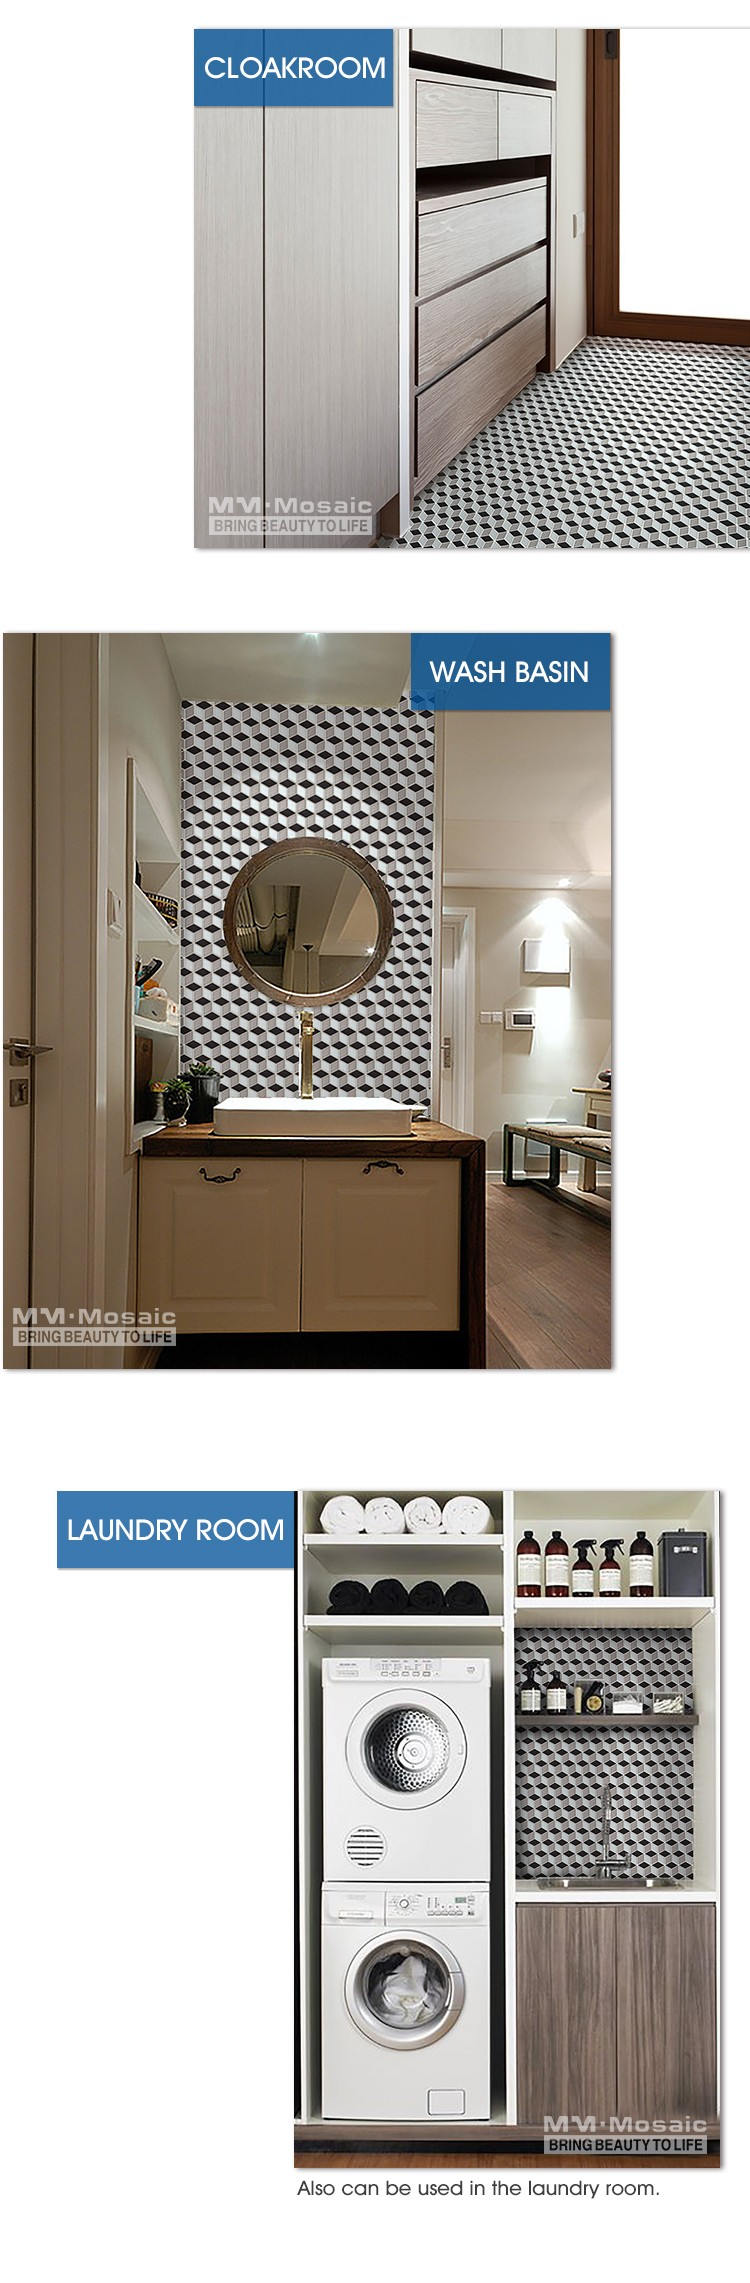 Cheap price of tile made in china brand names rhombus ceramic cube 3d mosaic wall and floor tile